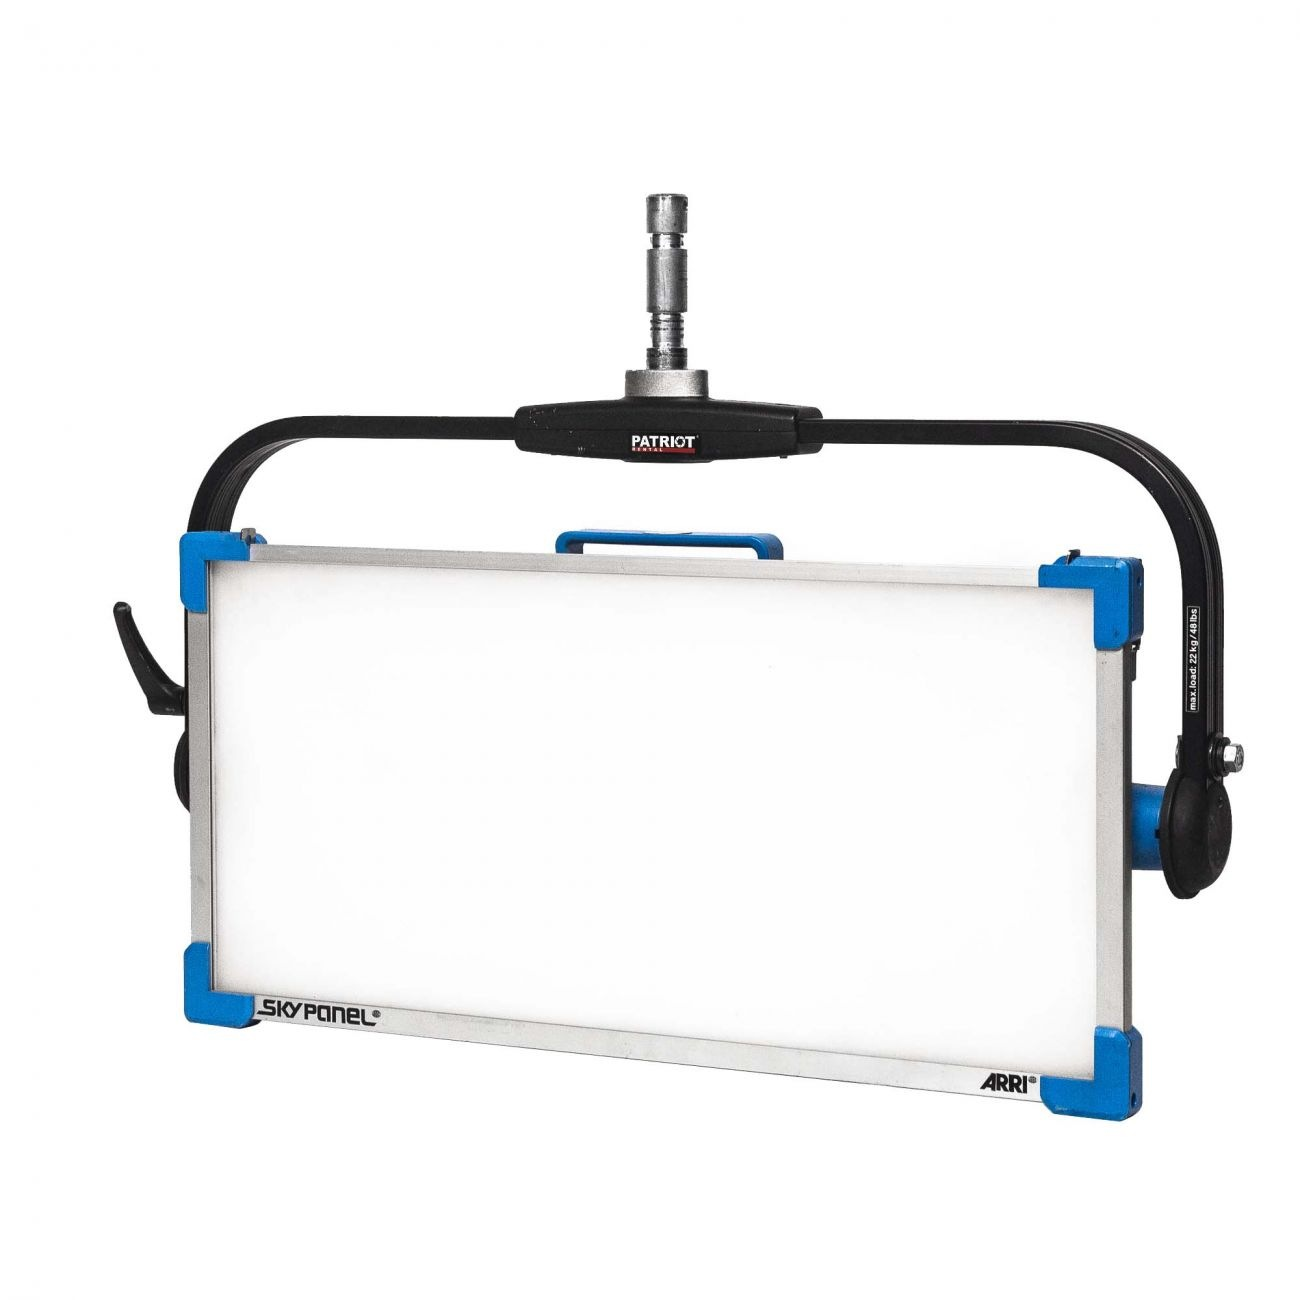 ARRI SkyPanel S60-C LED Softlight RGB